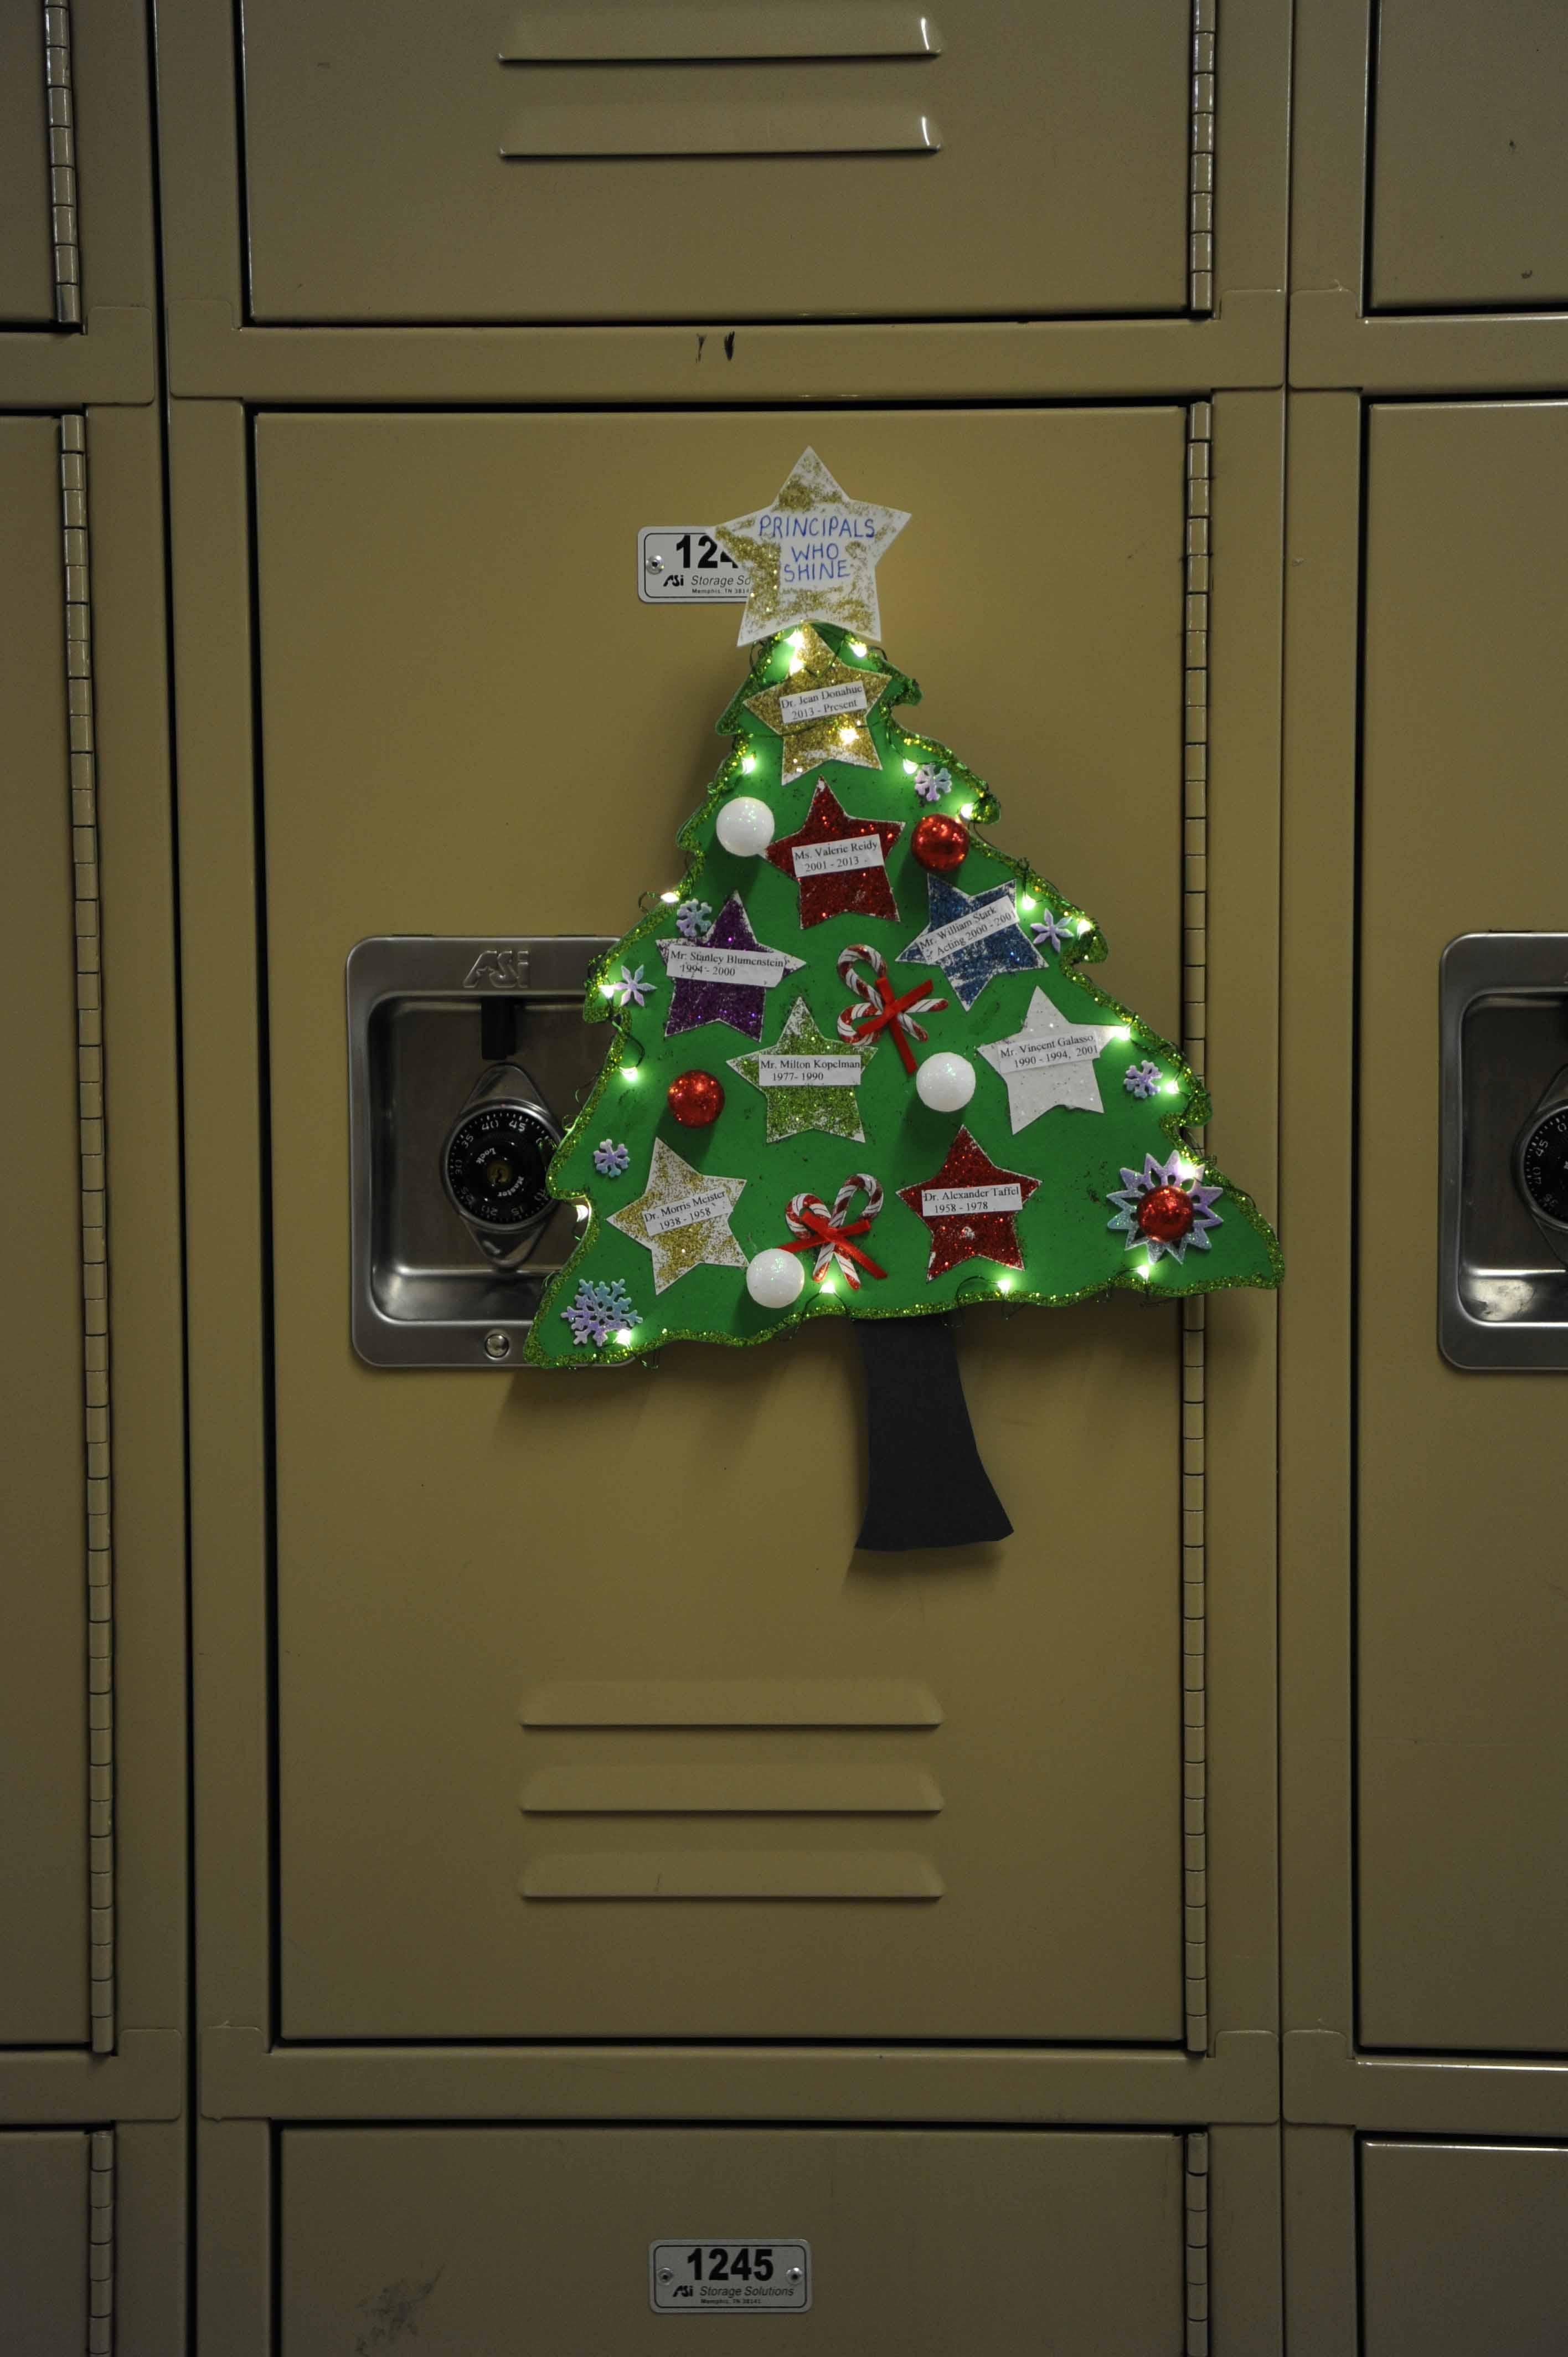 Students Showcase Their Holiday Spirit The Science Survey